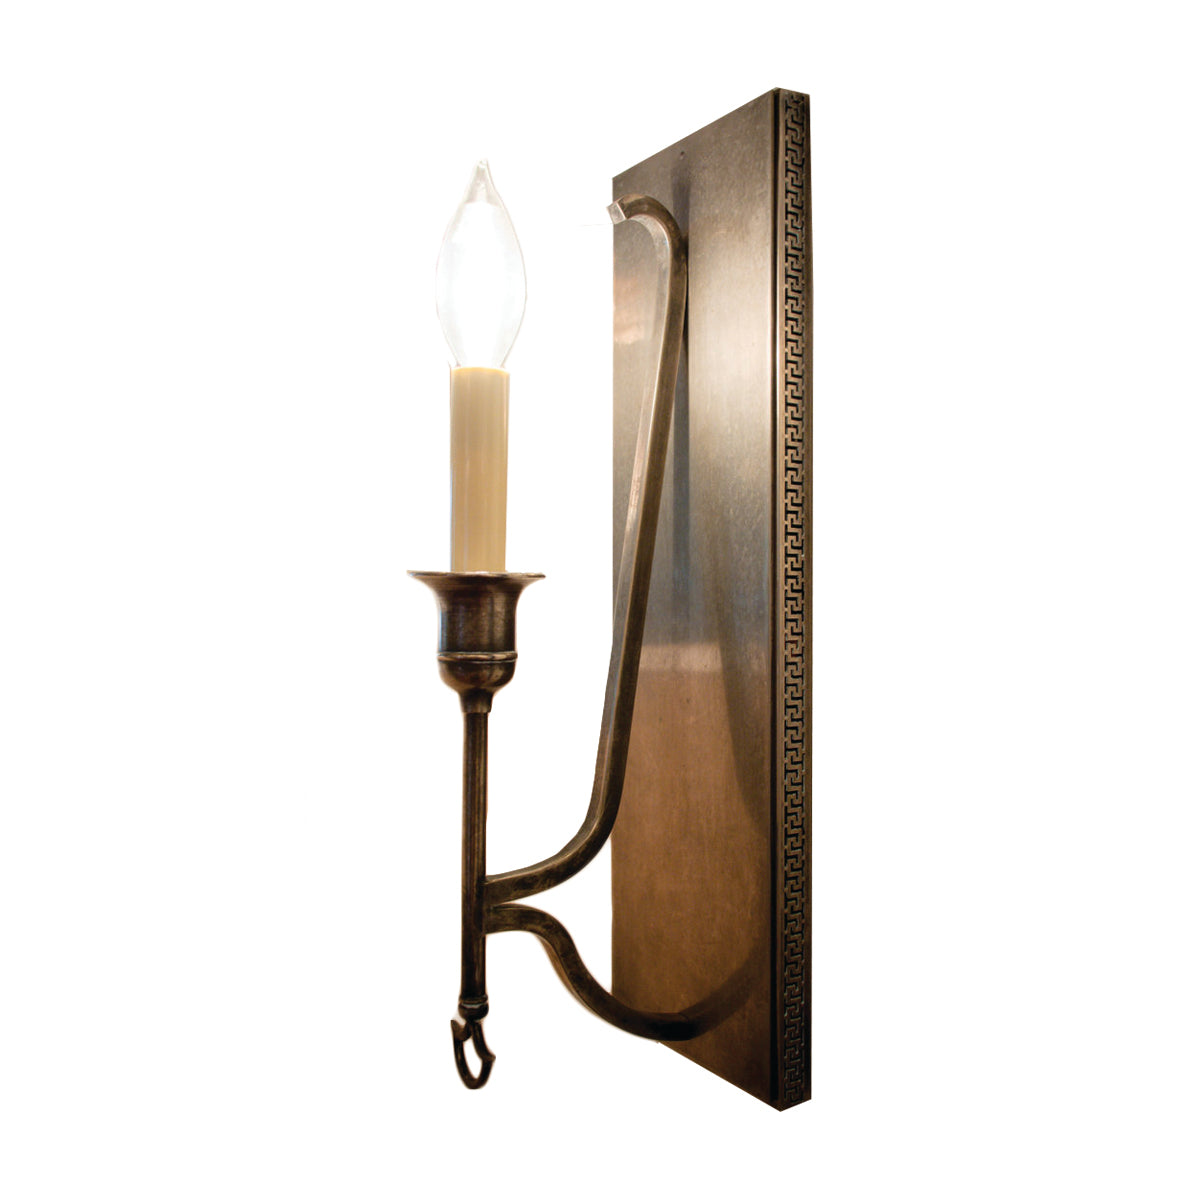 Savannah Sconce by Visual Comfort & Co. in Sheffield Nickel